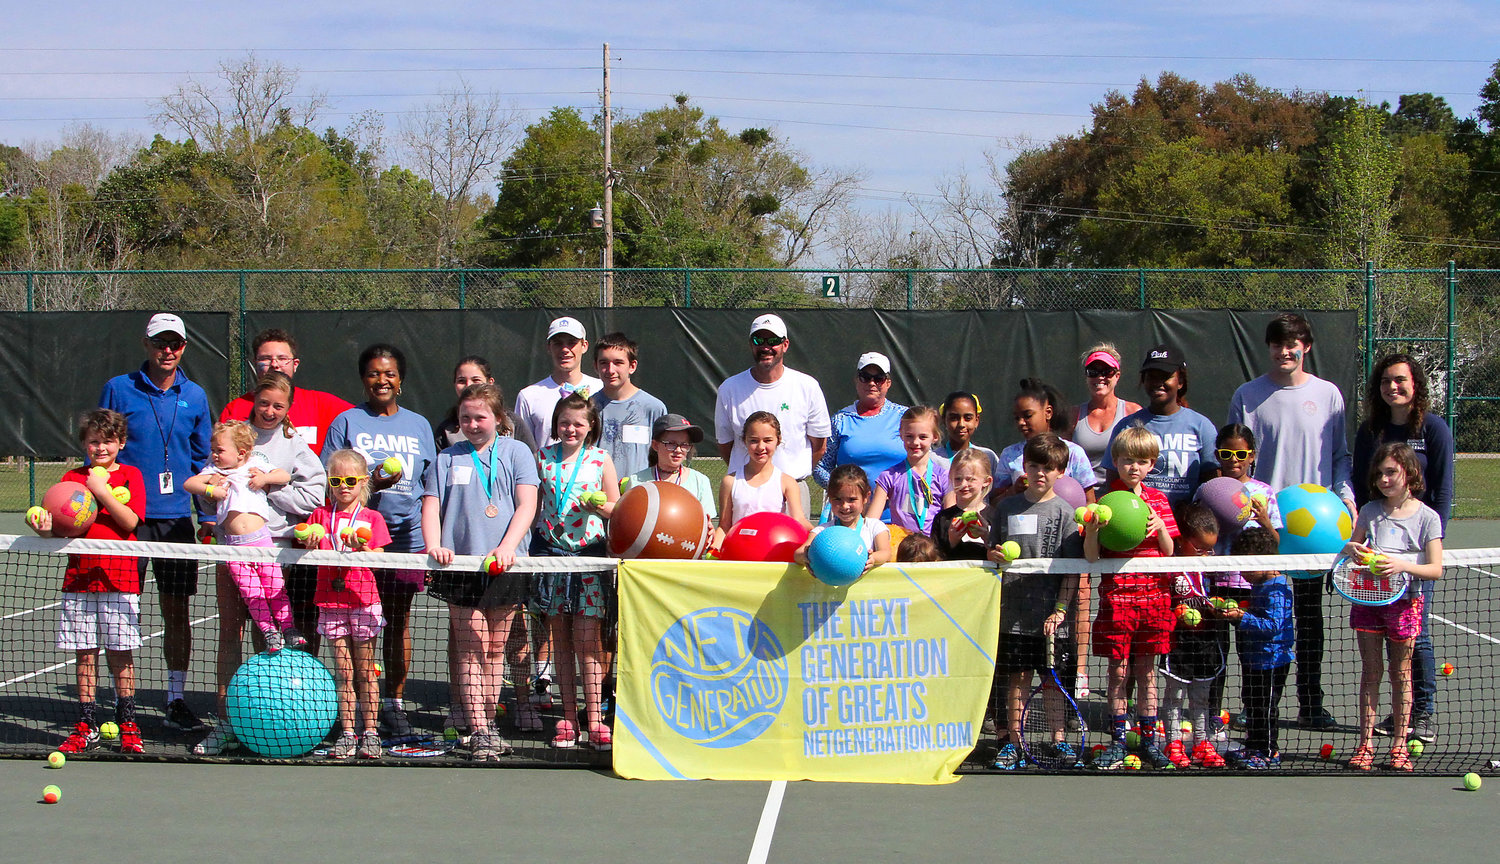 Net Generation - Team Challenge at Mike Ford Tennis Center in Fairhope.